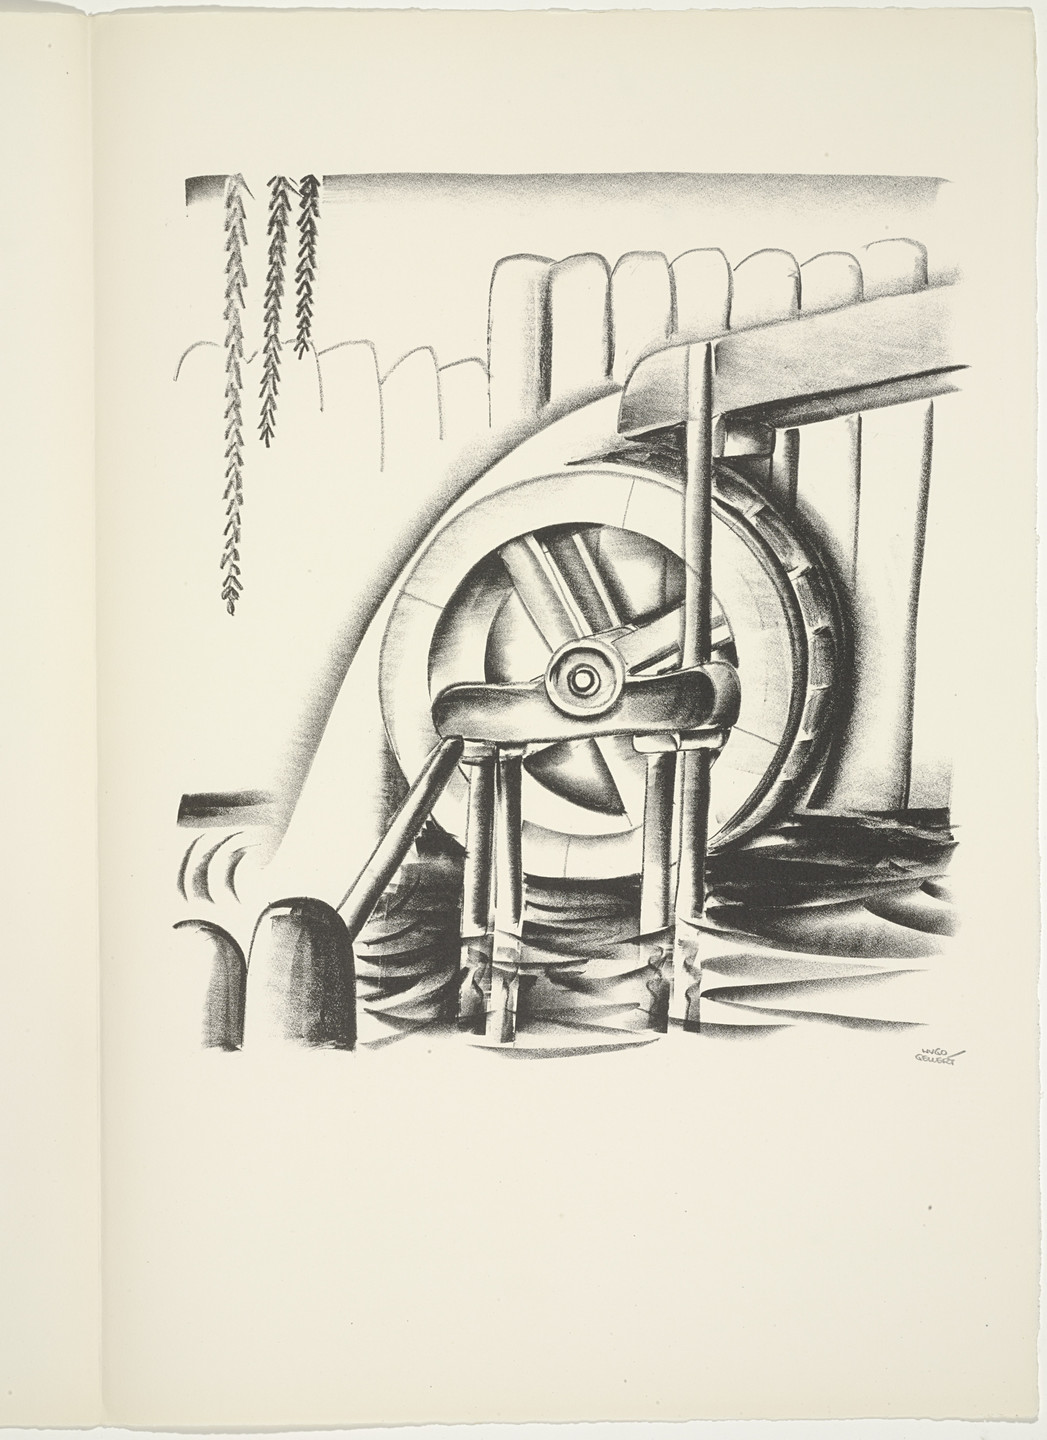 Hugo Gellert. Plate (folio 88) from 'Capital' in Pictures. 1933